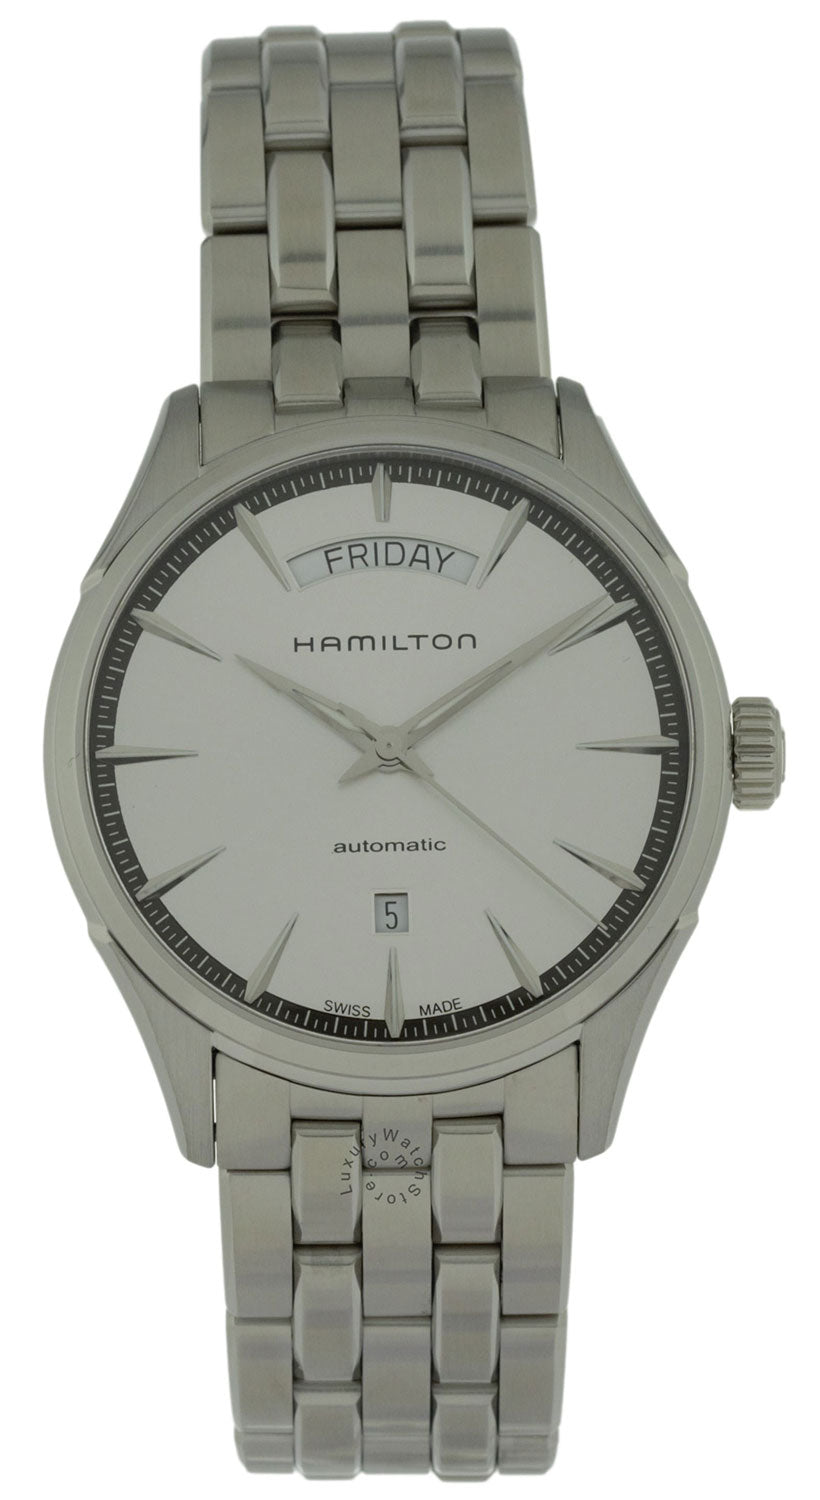 Hamilton Jazzmaster Day Date Silver Dial Automatic Men Watch H42565151